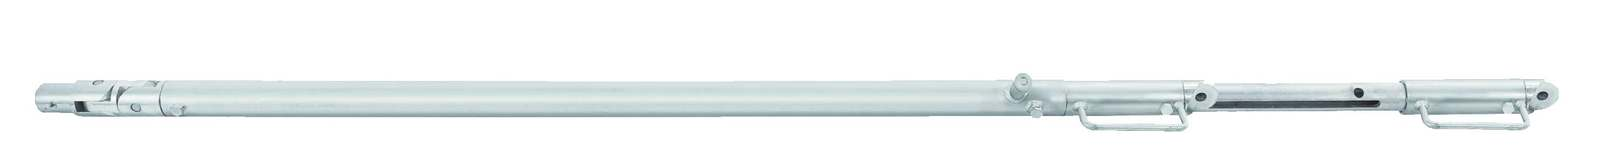 Telescopic Rail – 100205